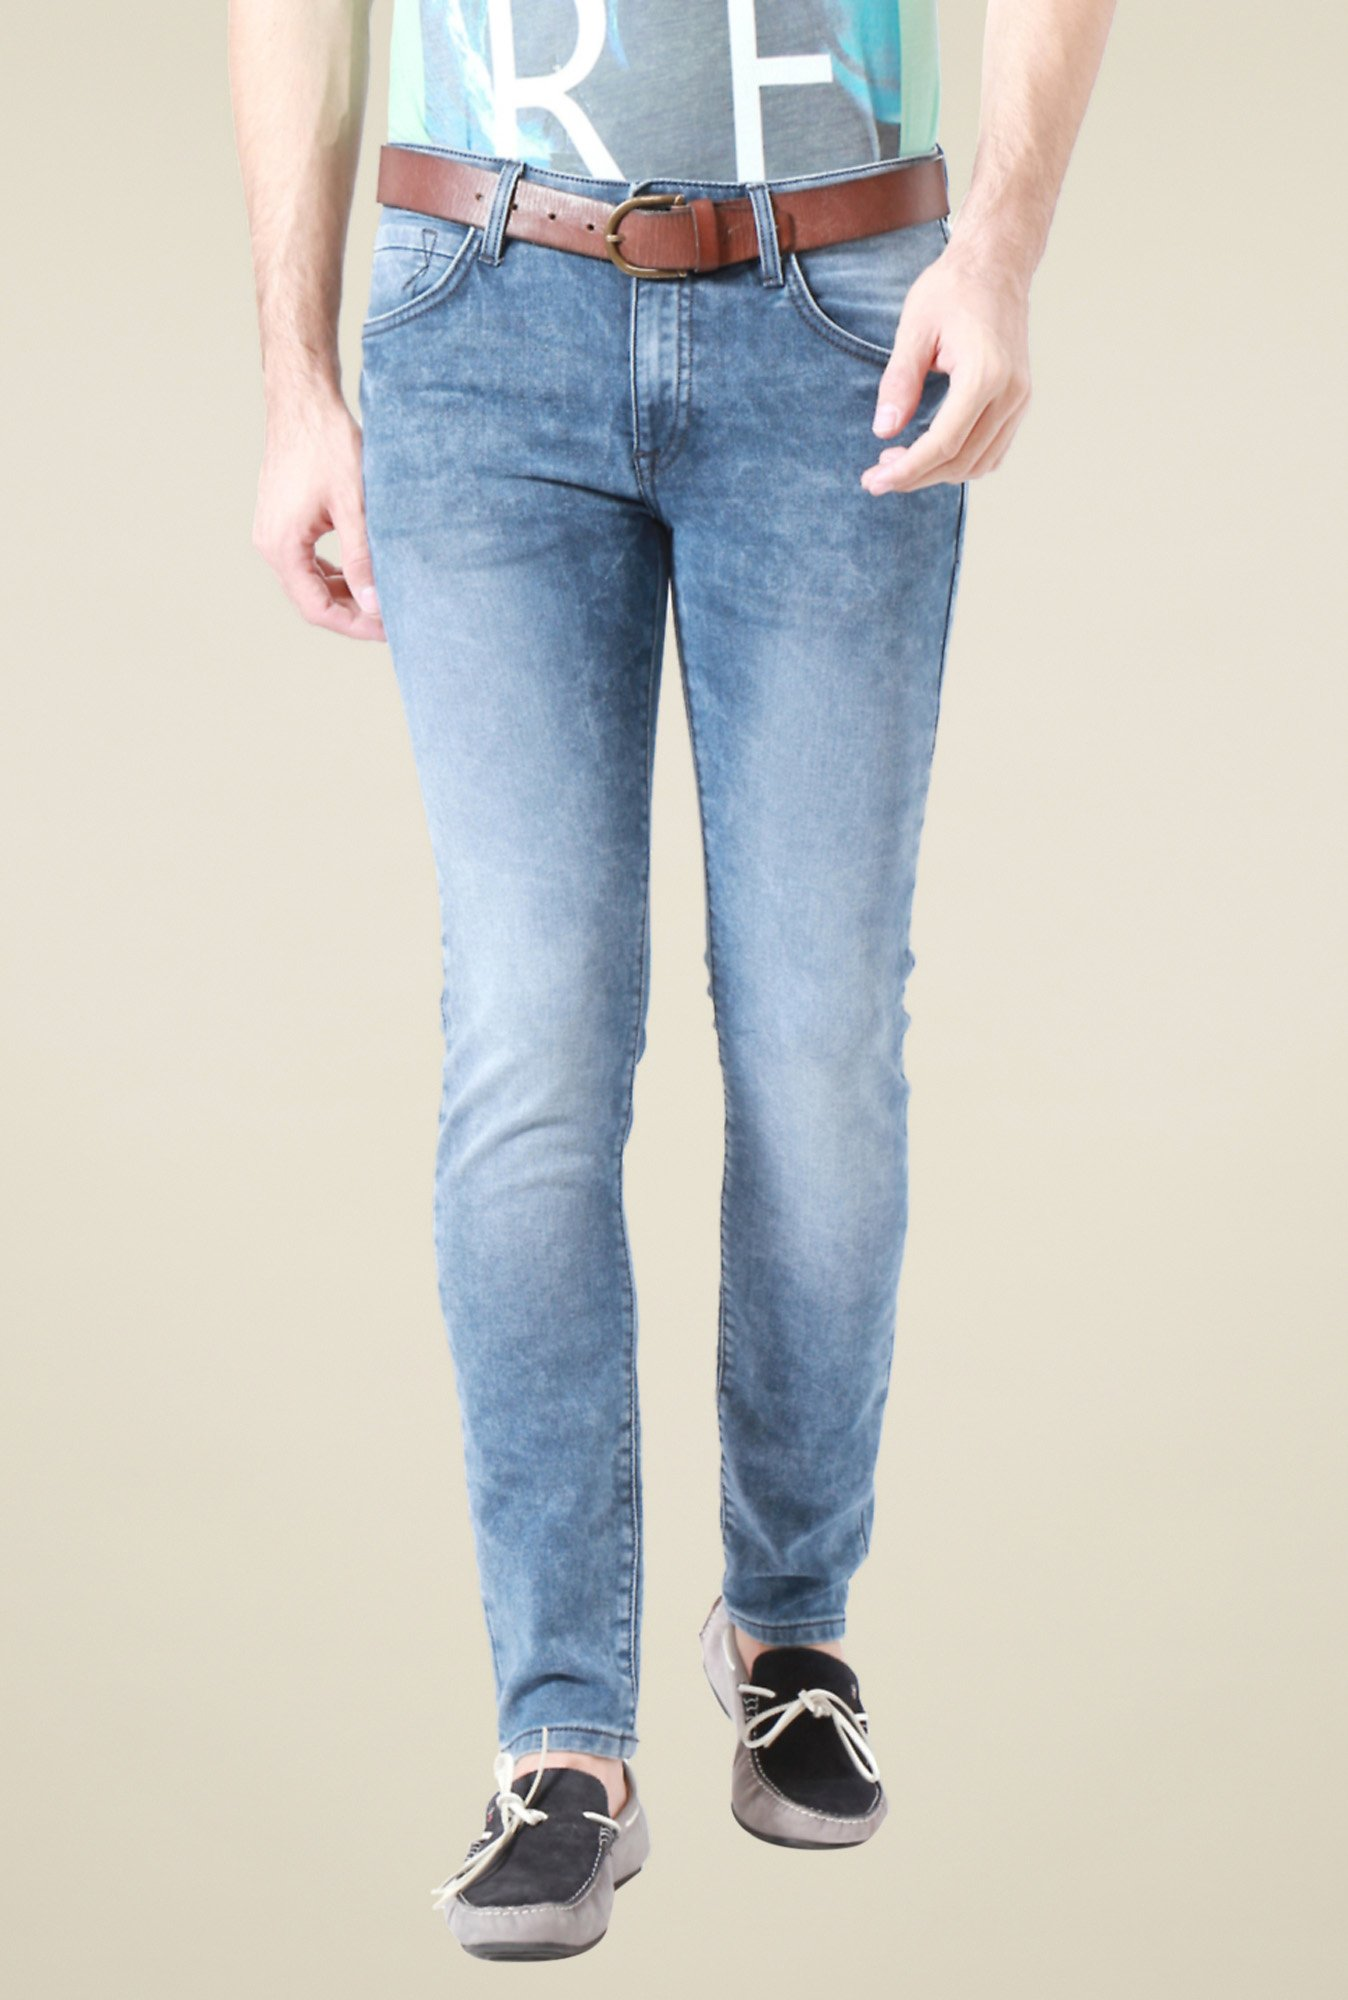 Allen Solly Blue Heavily Washed Mid Rise Jeans